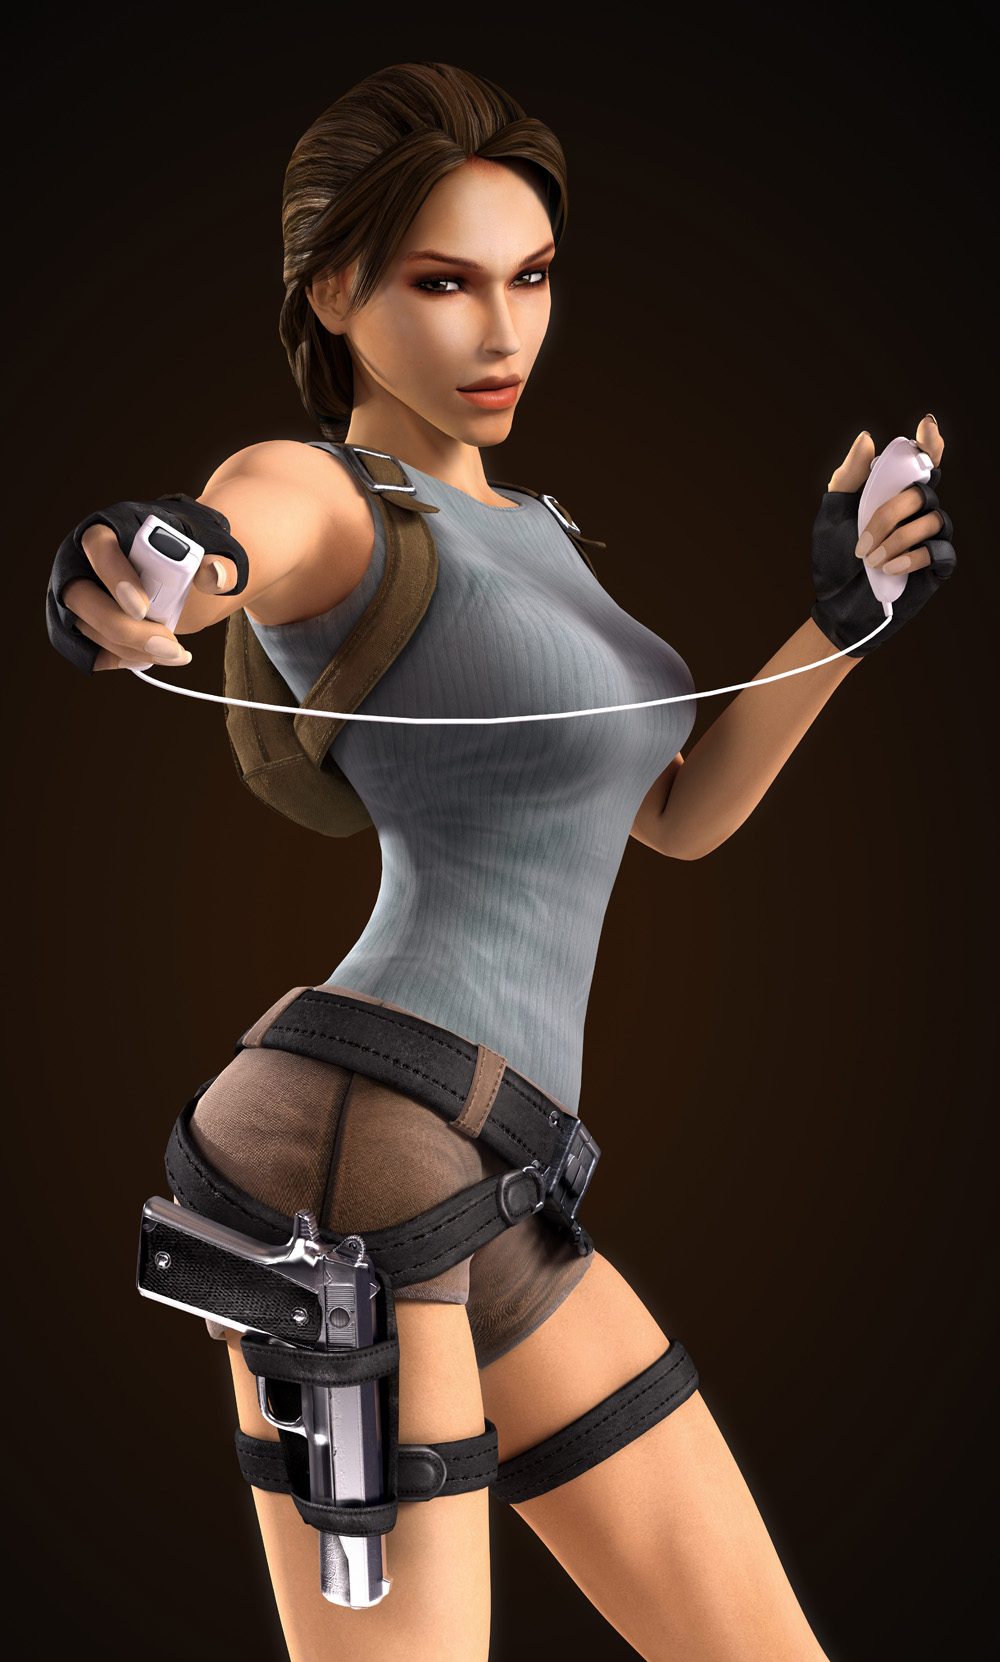 Lara croft goblin fuck torrent download hentai images